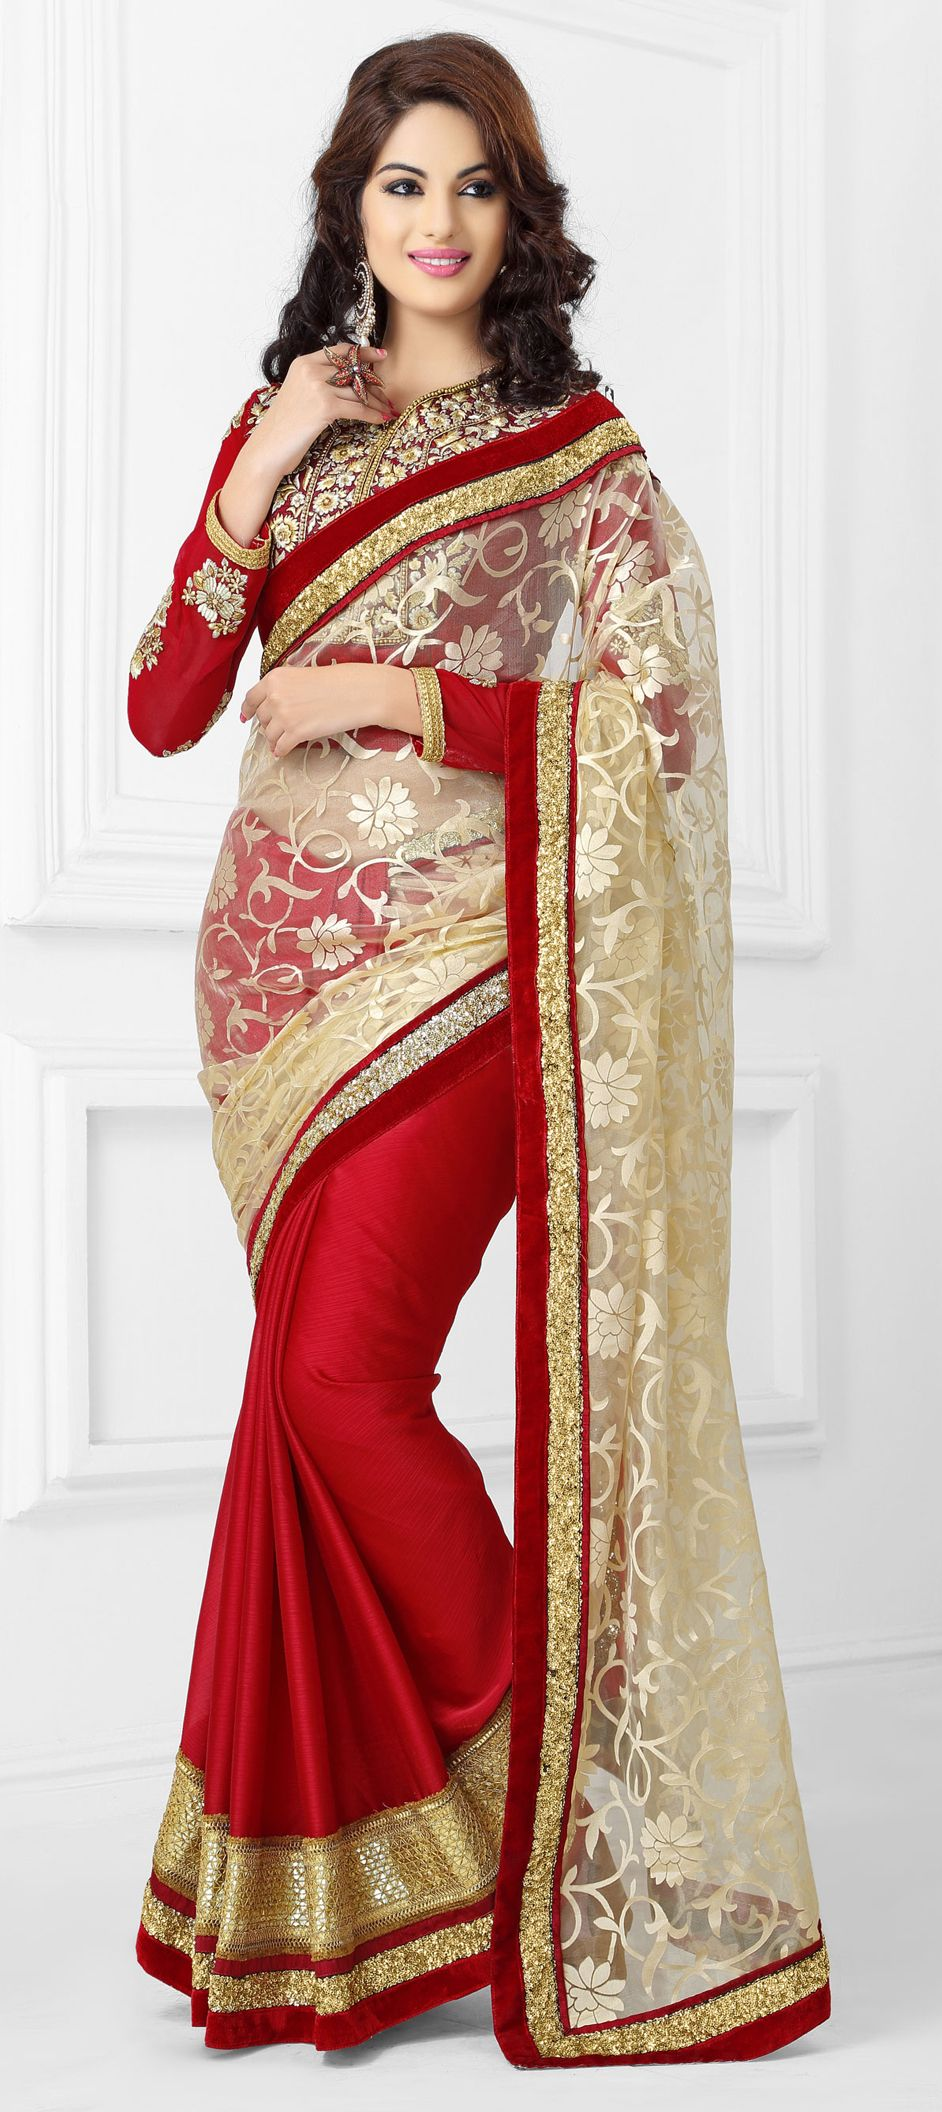 151932: Red and Maroon, Beige and Brown color family Saree with ...